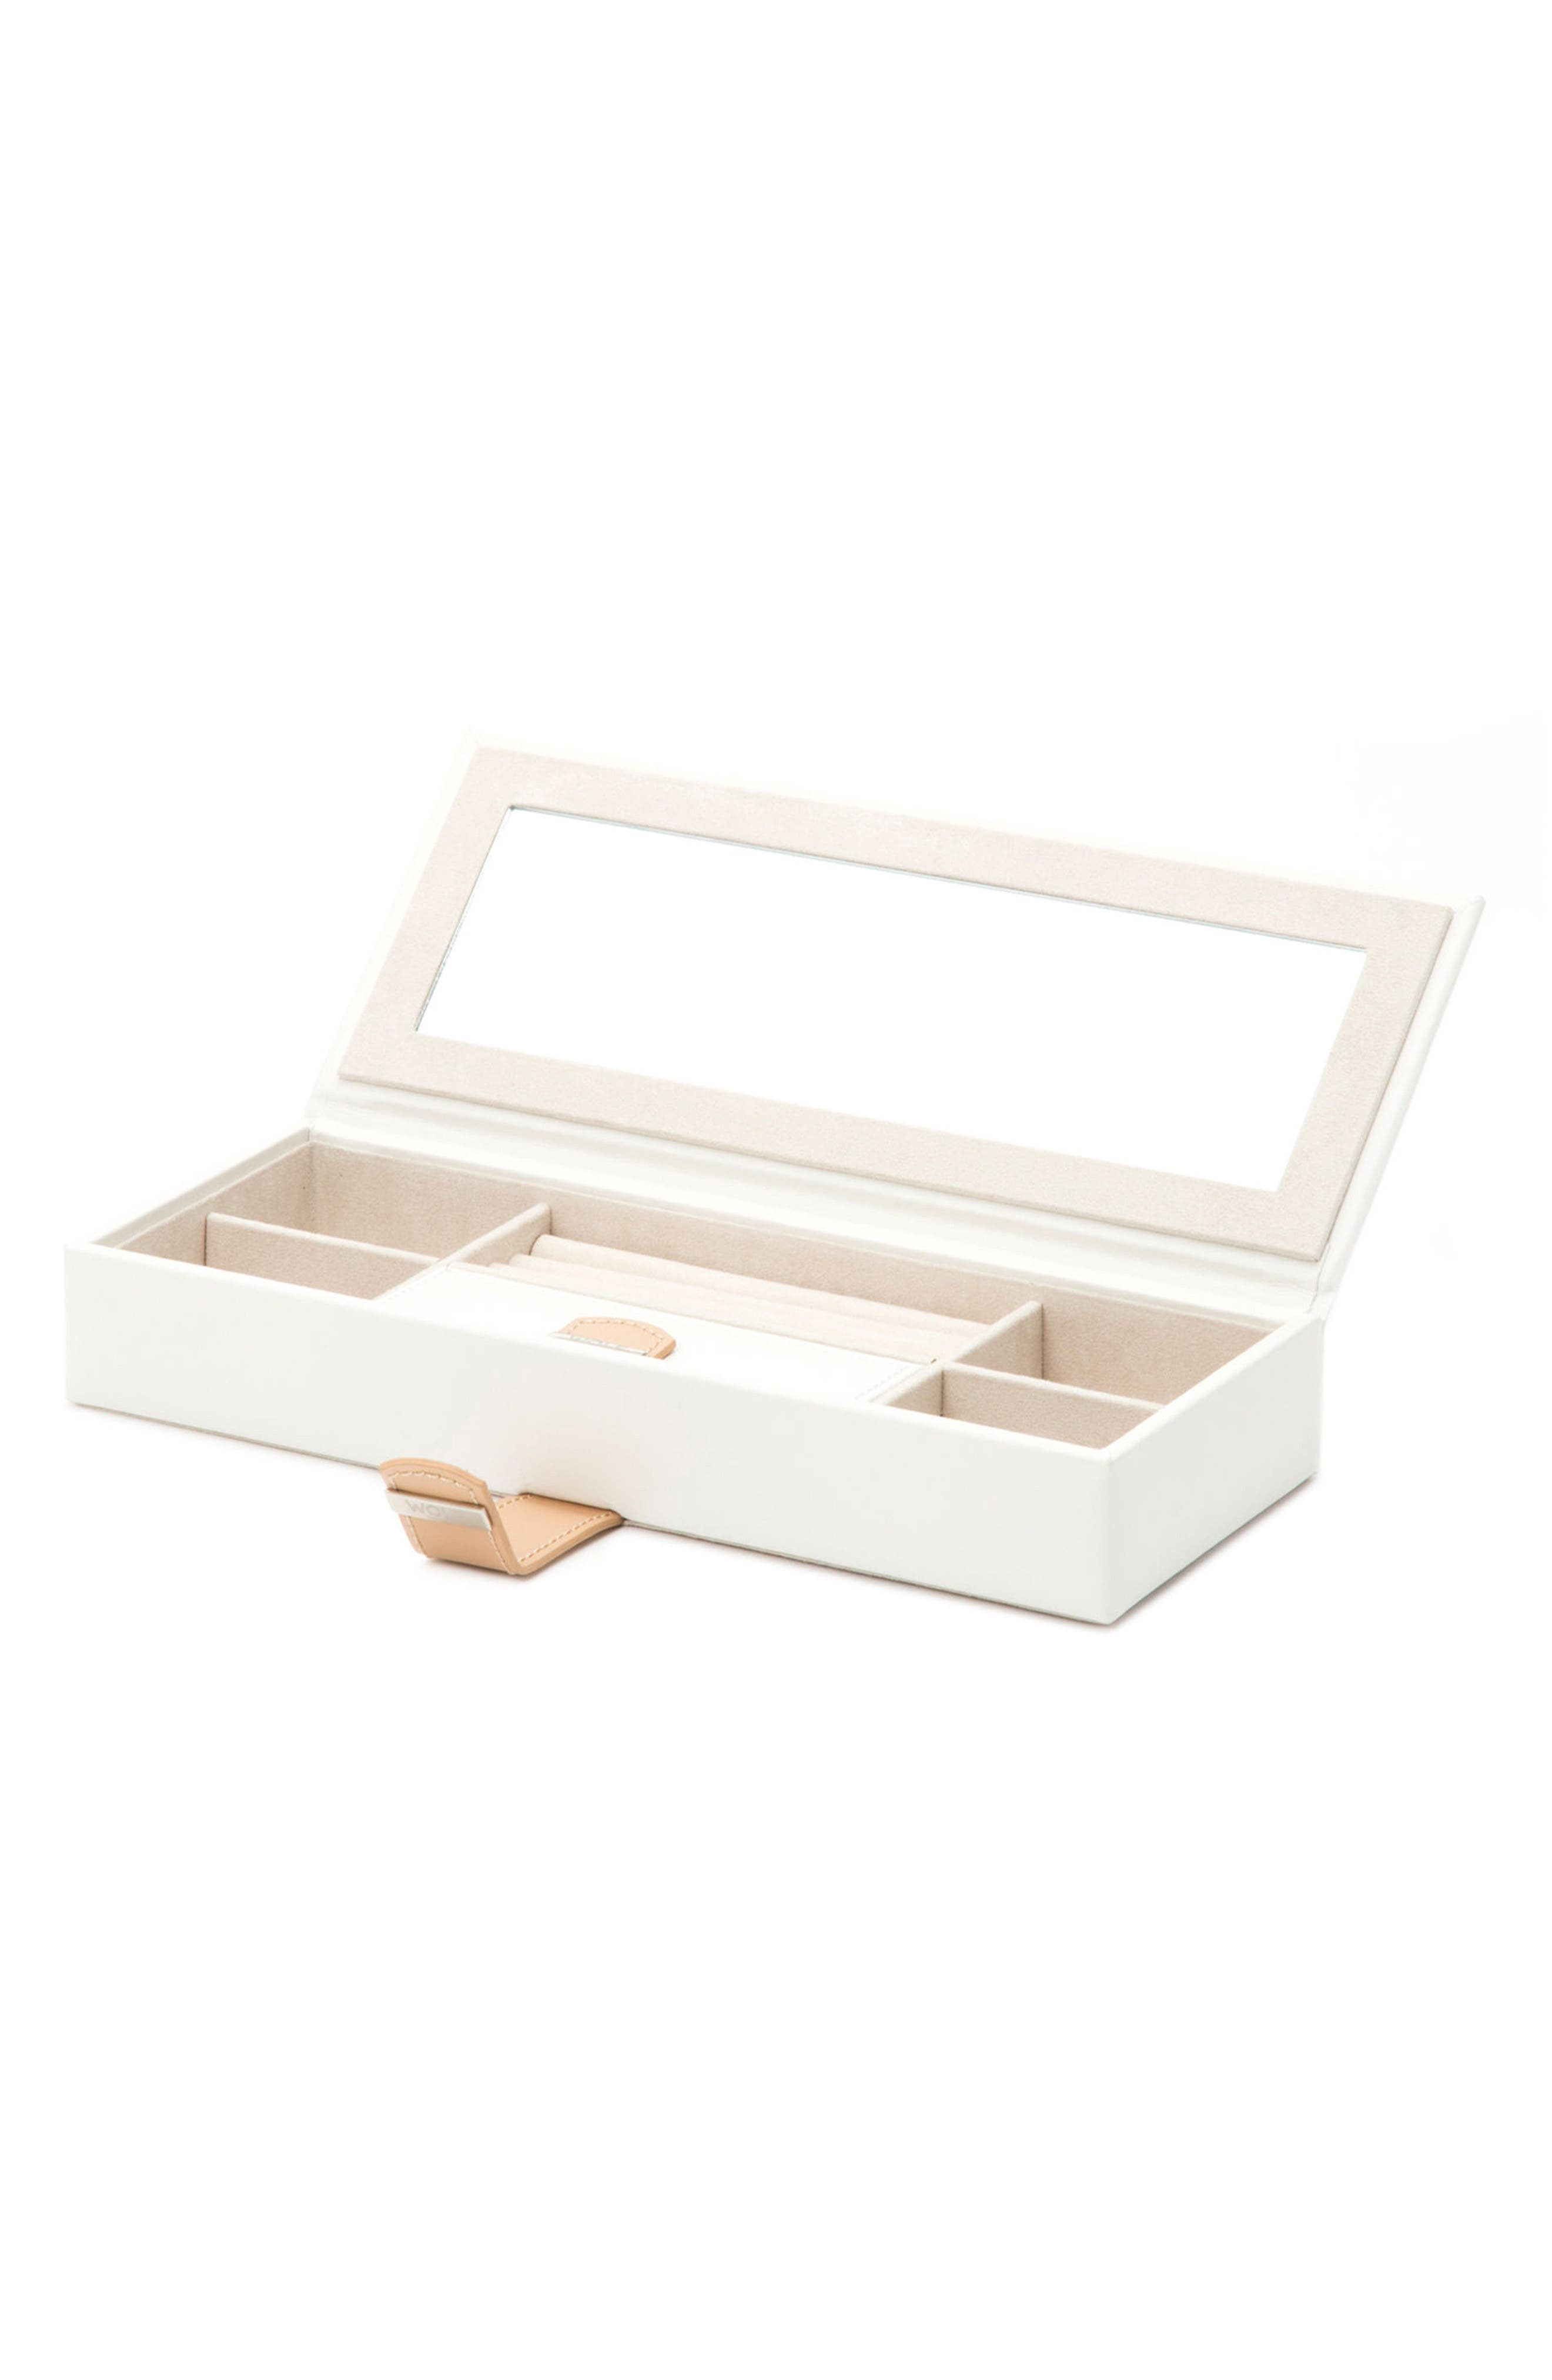 Blossom Jewelry Box,                             Main thumbnail 1, color,                             IVORY